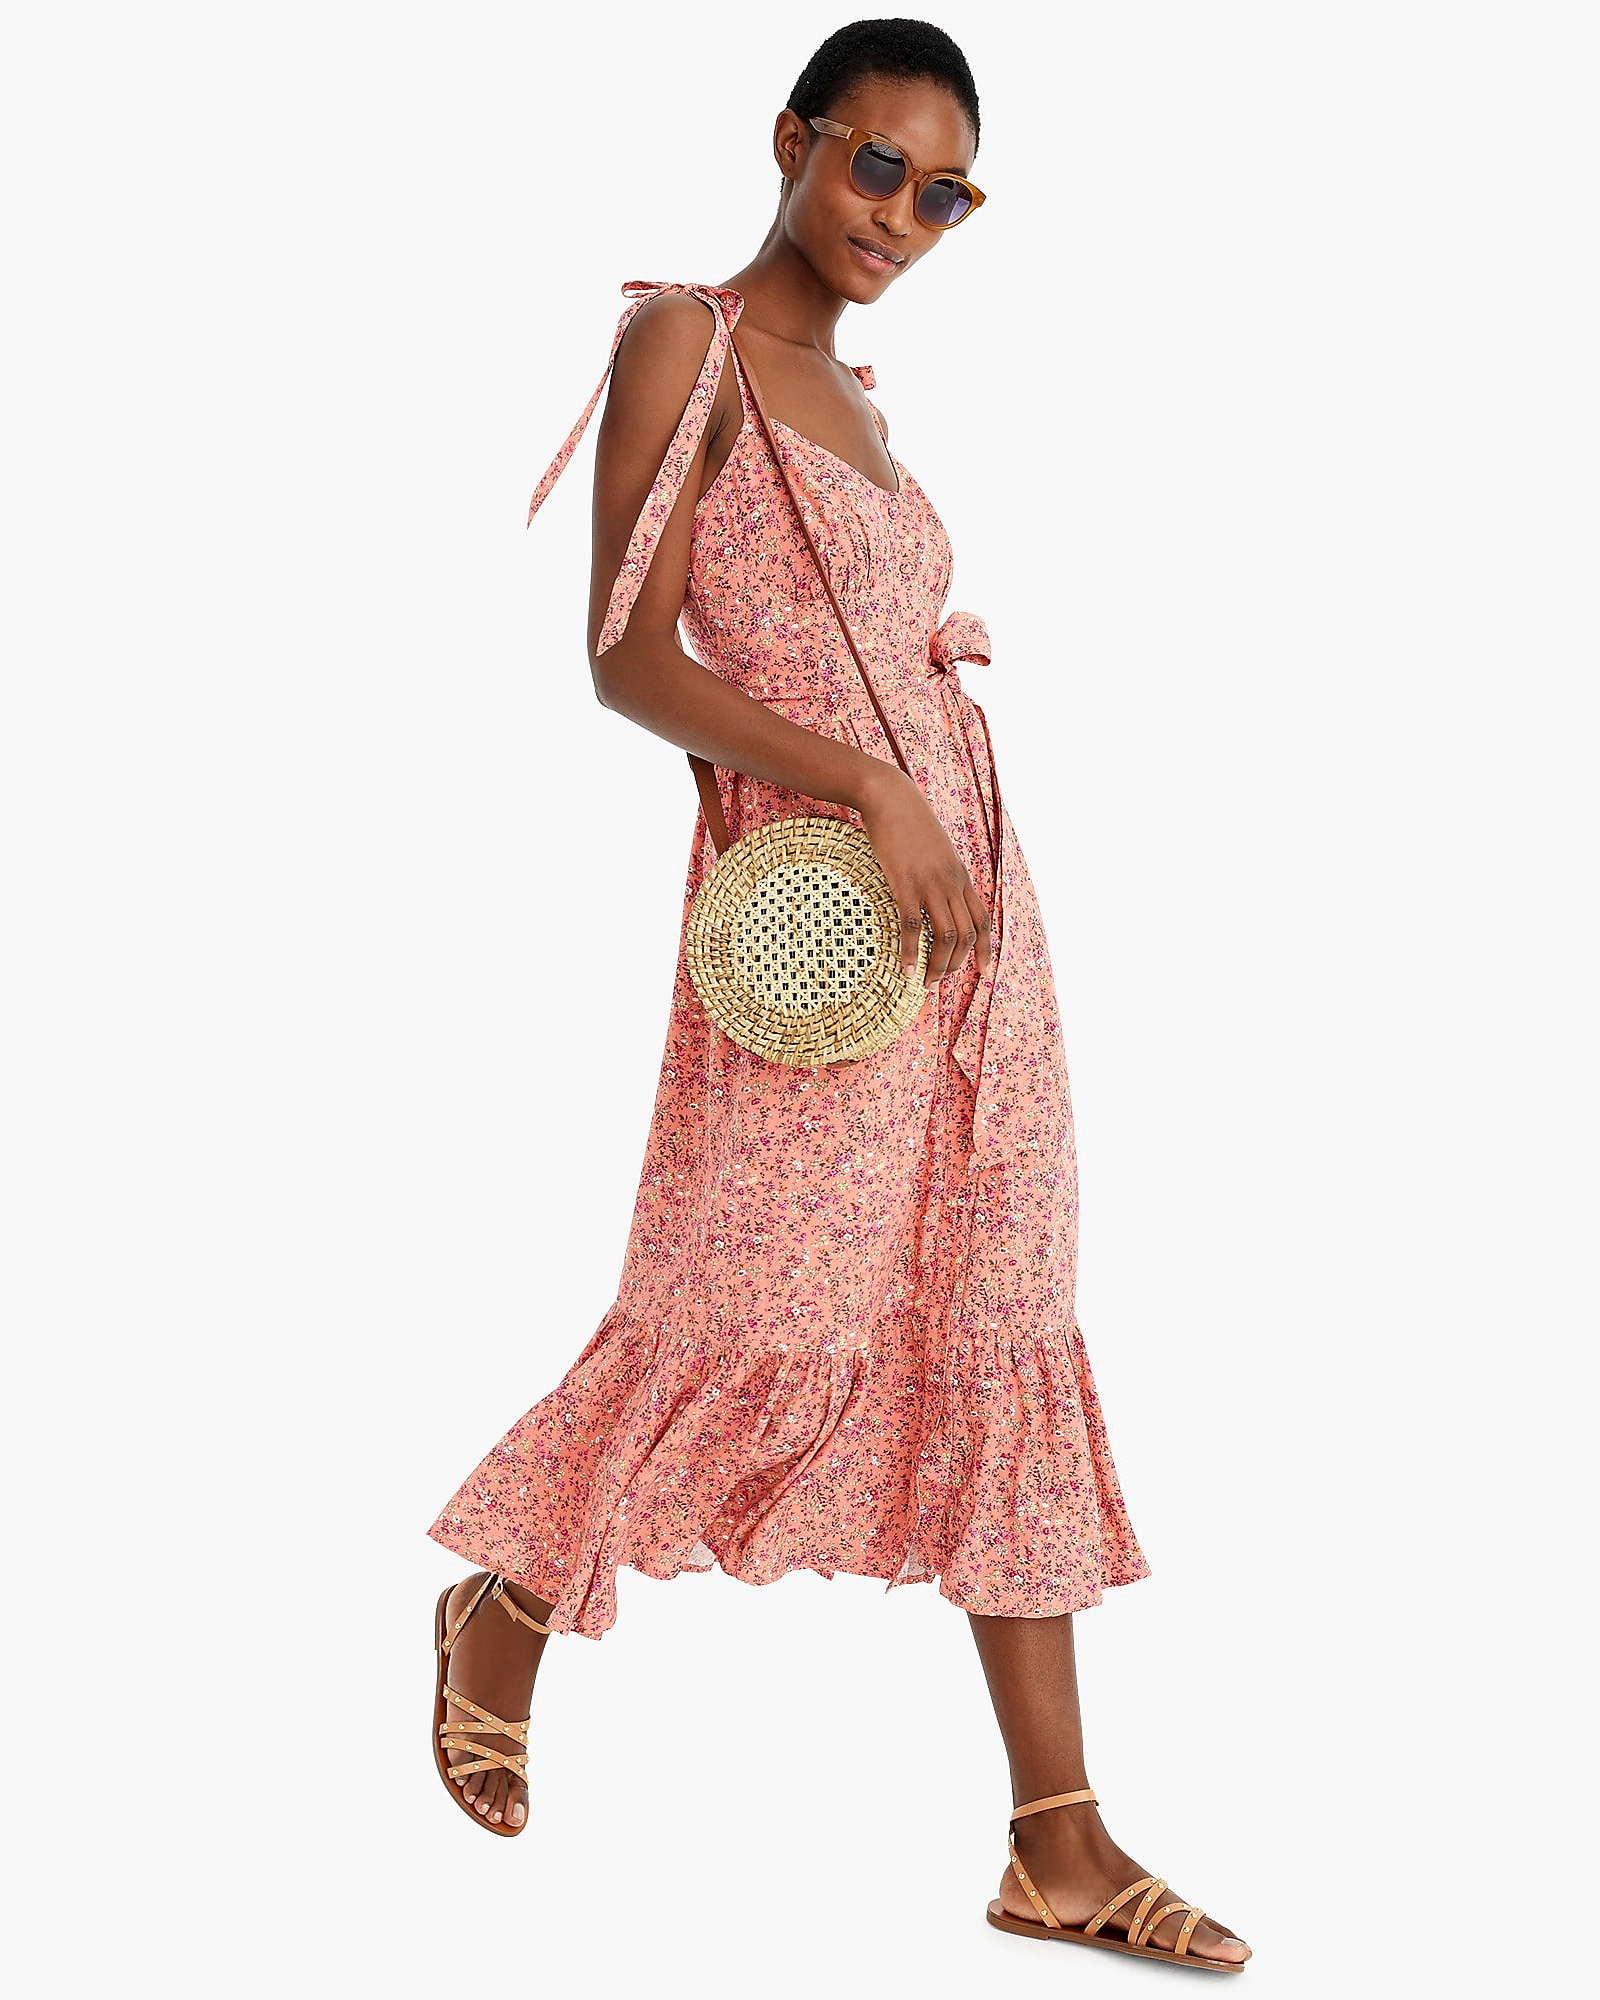 coral floral printed mob dress with tie straps